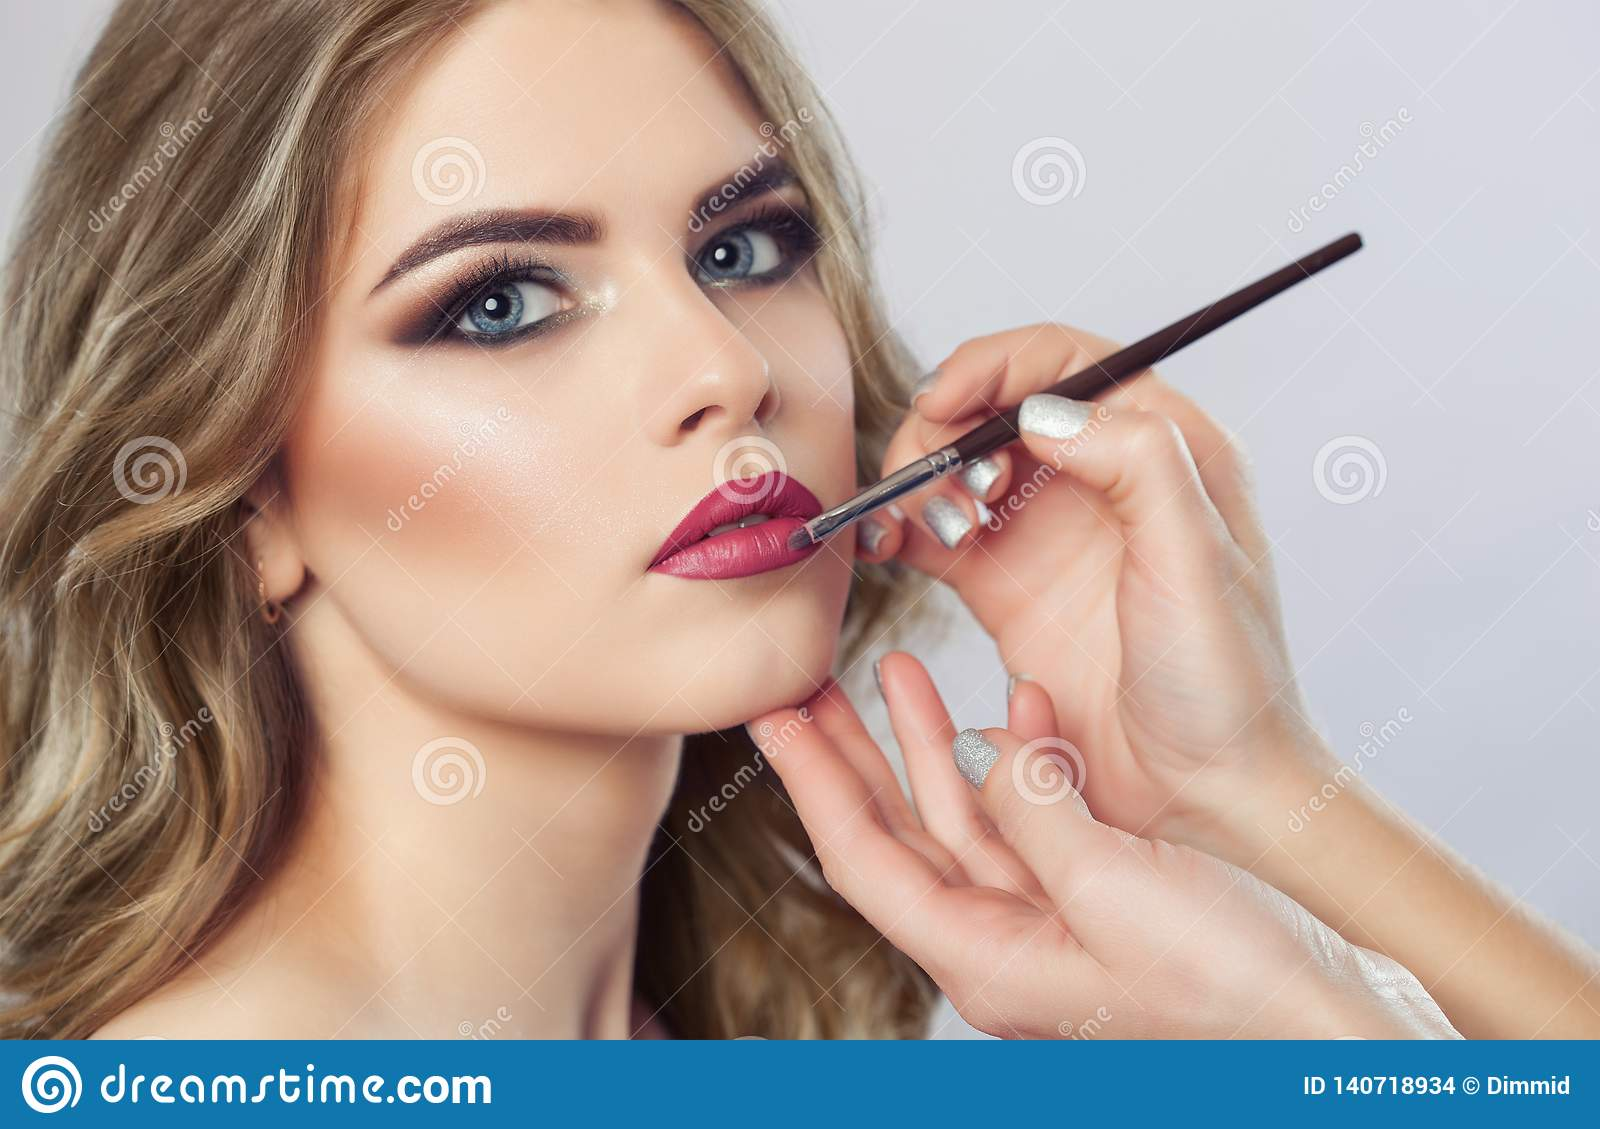 The make-up artist paints the lips of a beautiful woman, completes make-up in the beauty salon.